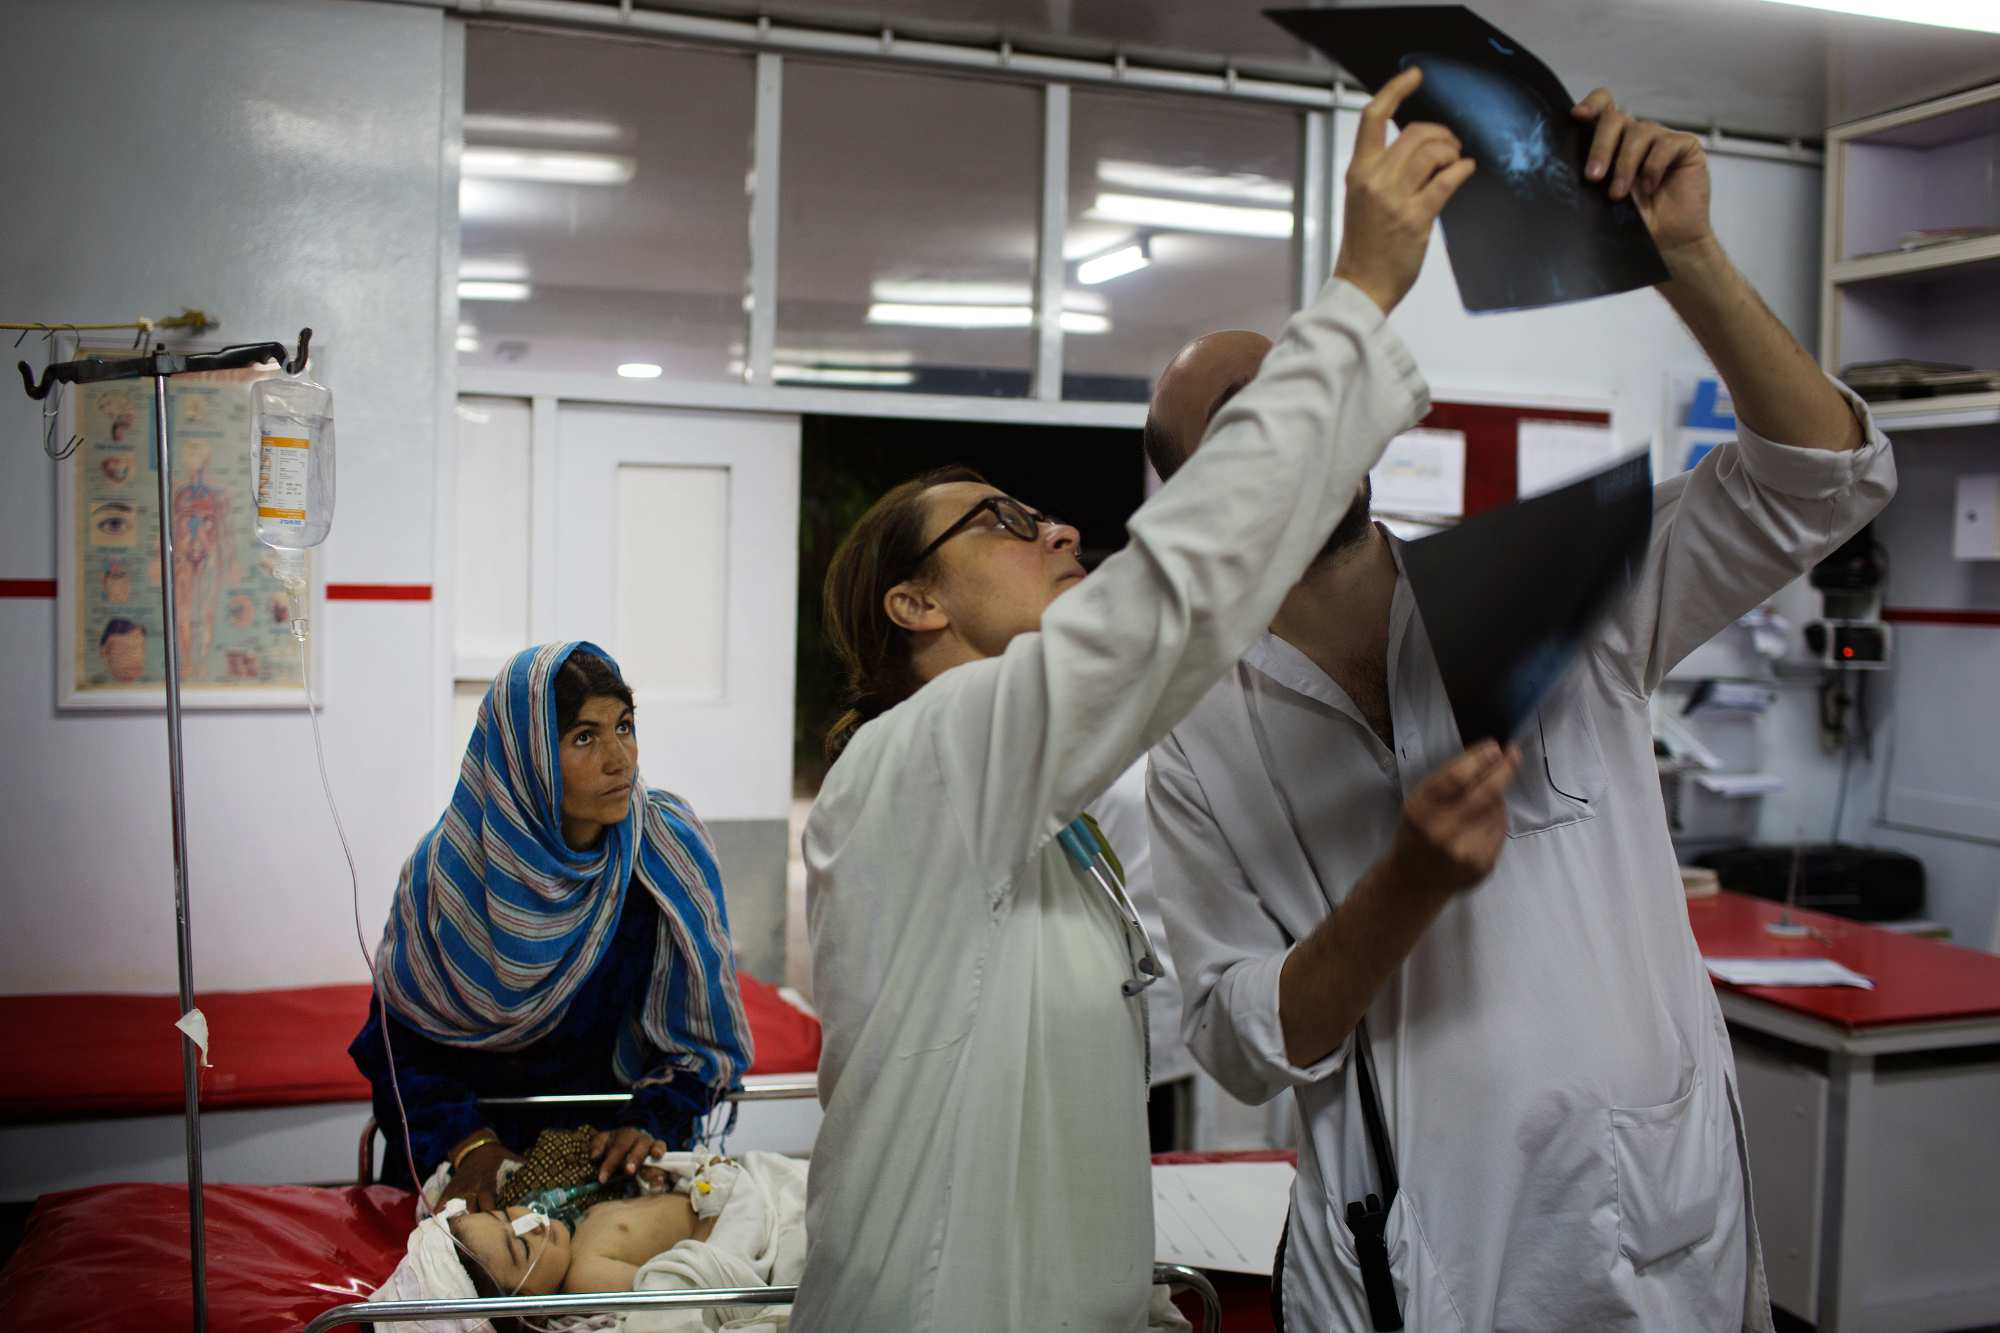 Dr. Daniele Scerrati, right, and a nurse look over the X-rays of 1 year-old Nasirullah who suffered a shrapnel injury to her head in Ghazni province, as her mother looks on.